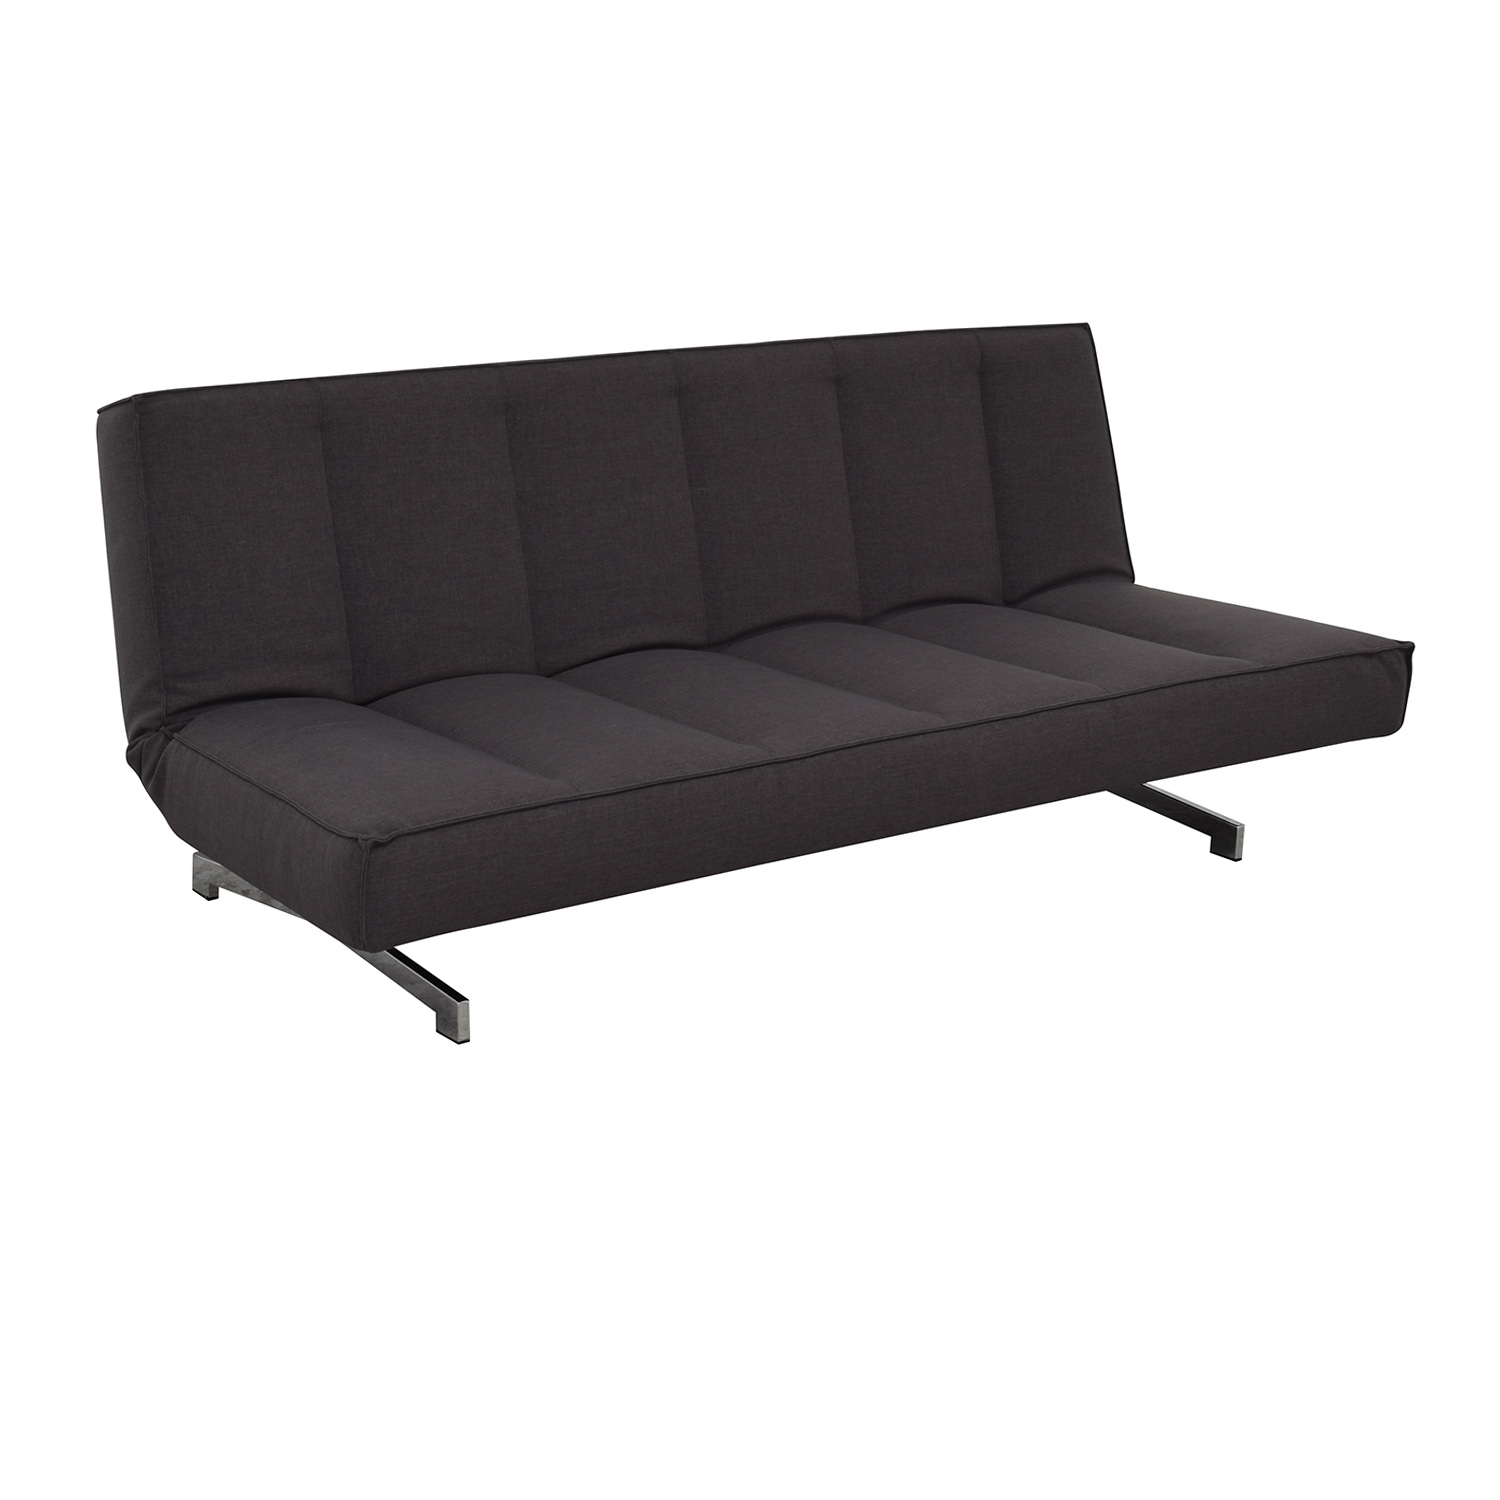 shop CB2 Flex Gravel Sleeper Sofa CB2 Sofas